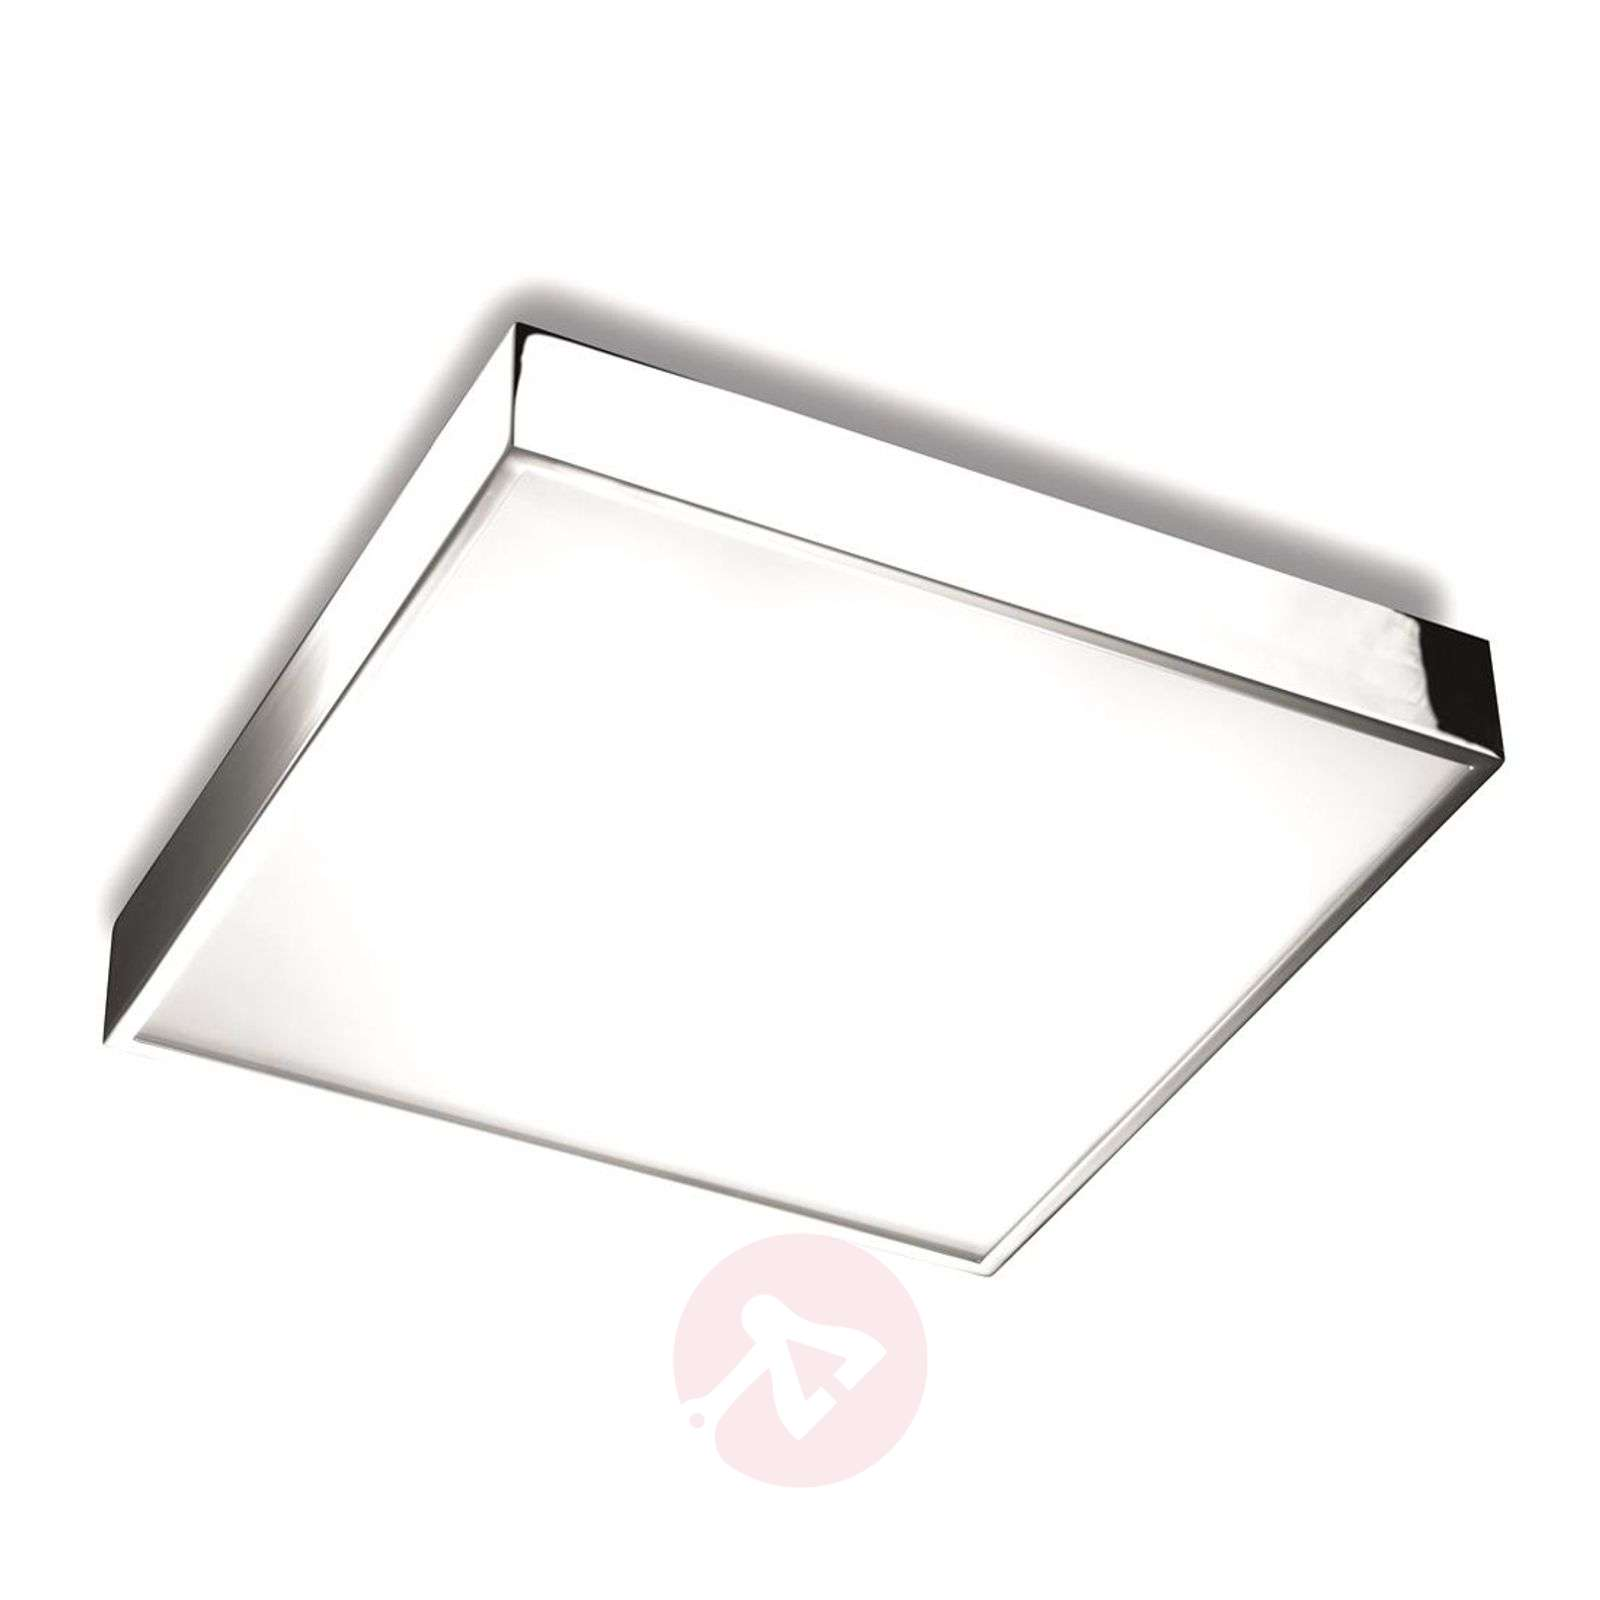 Square LED ceiling lamp Apolo, IP20-7585257-01